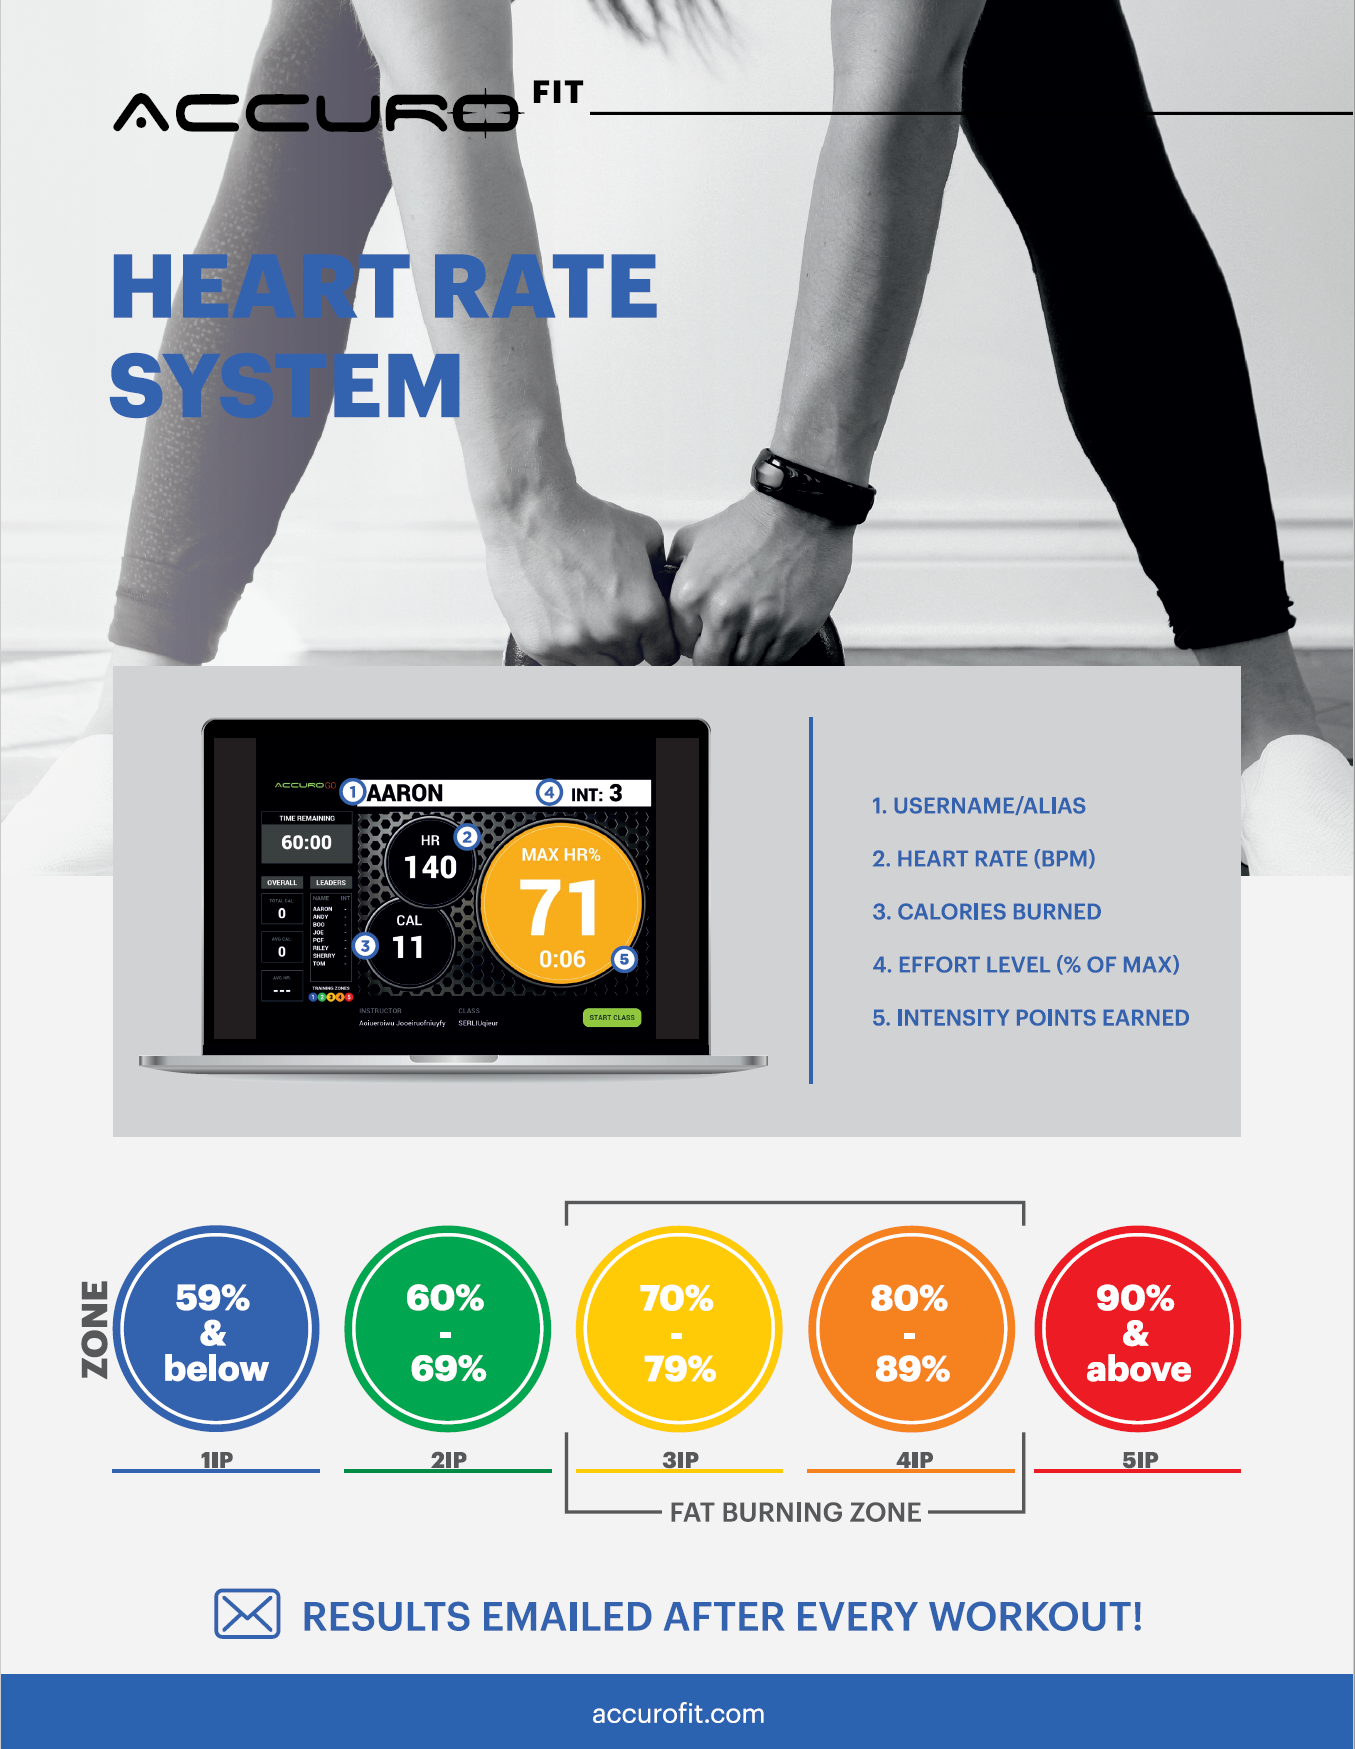 Heart Rate System